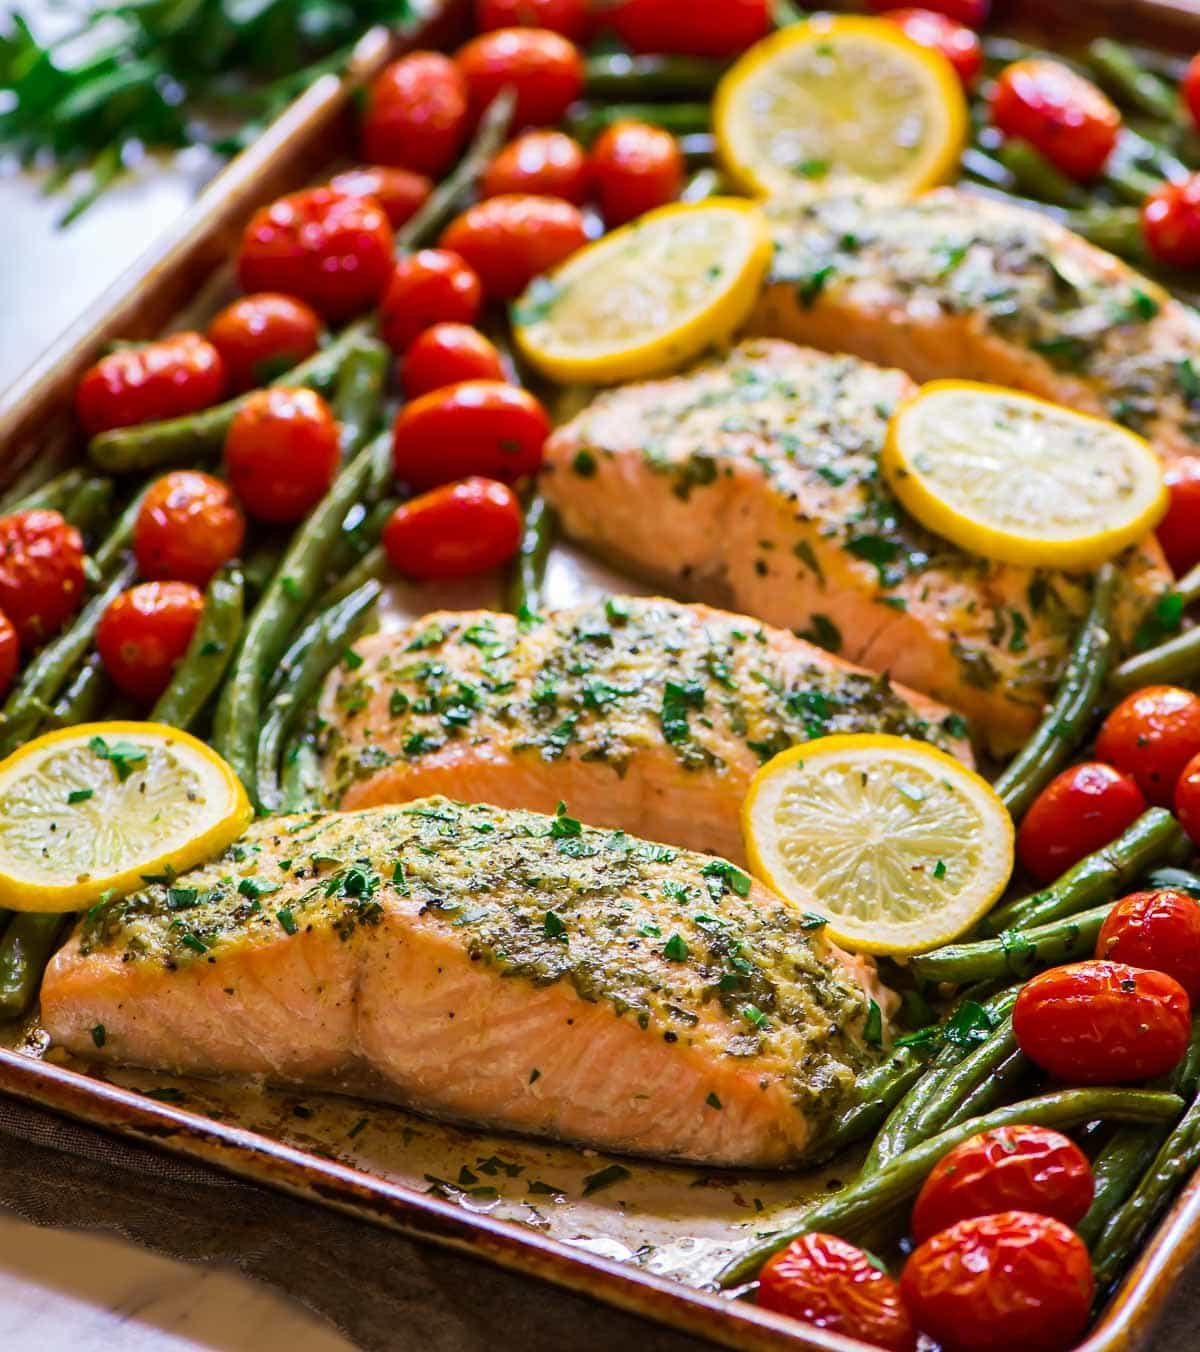 Easy 30-Minute Garlic Salmon with Lemon Butter and Veggies.